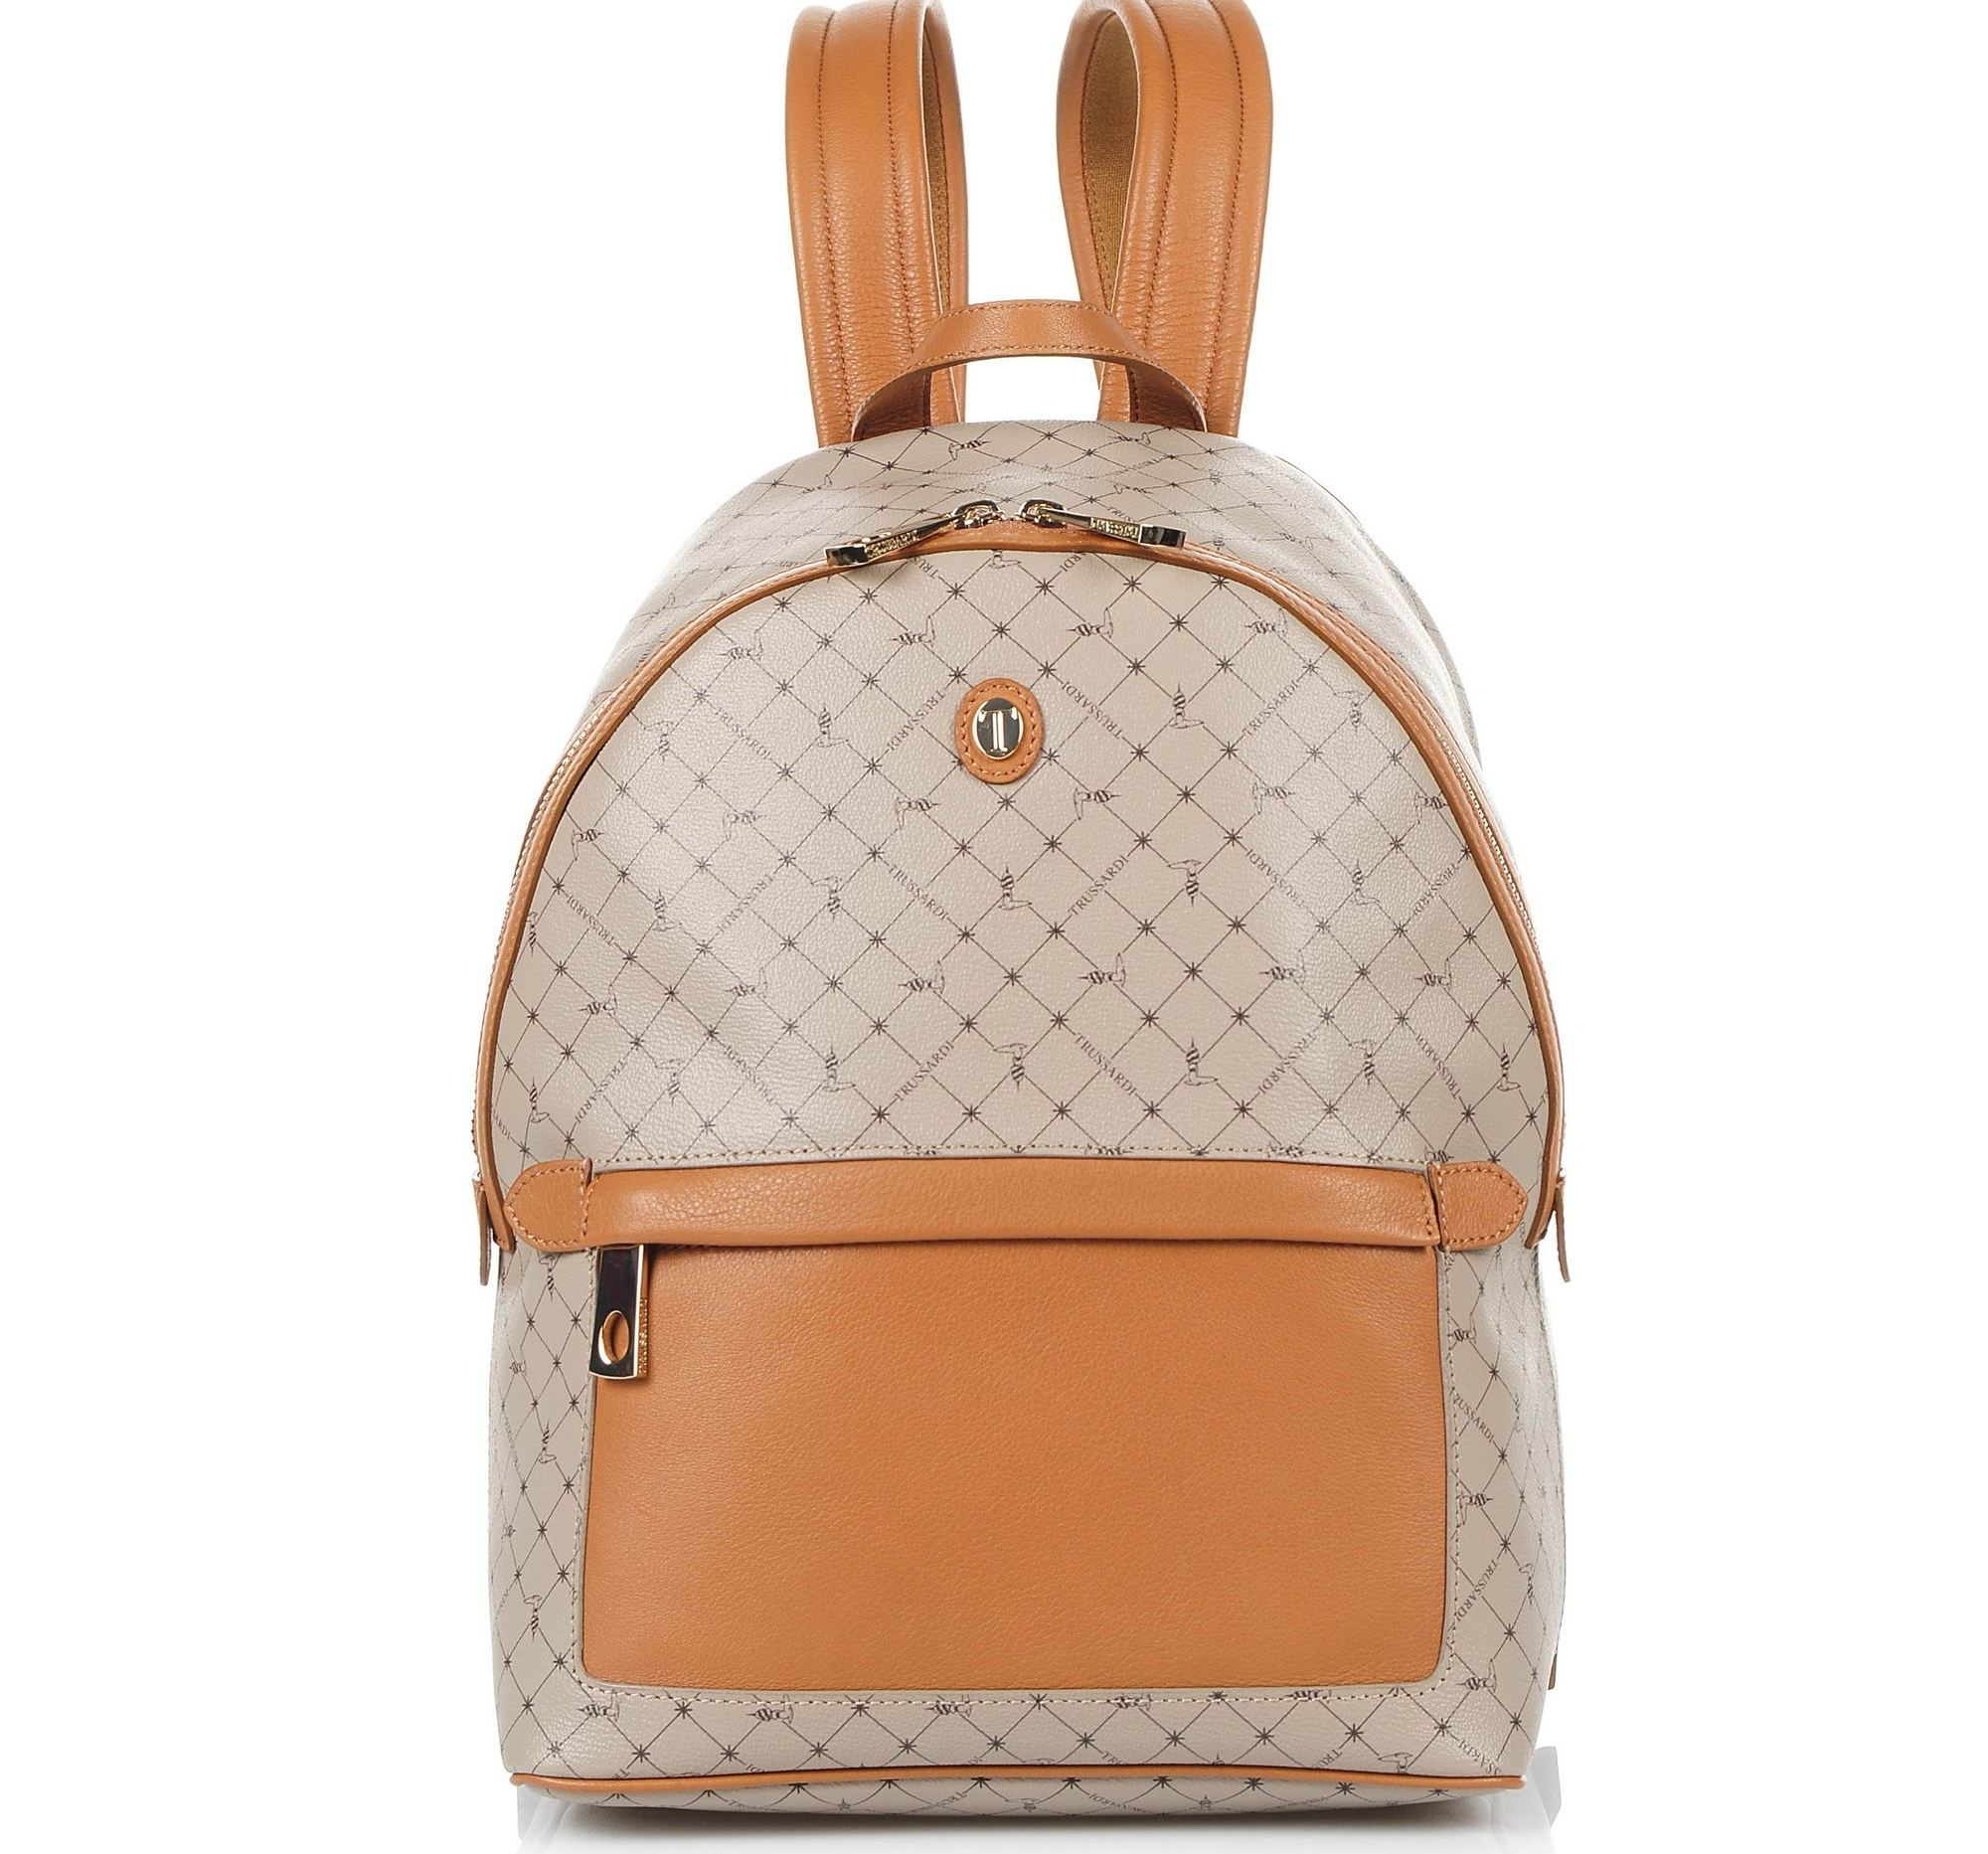 Δερμάτινο Σακίδιο Πλάτης Trussardi Mini Backpack Monogram Crepe Leather/Velvet Calf Leather 76B00042